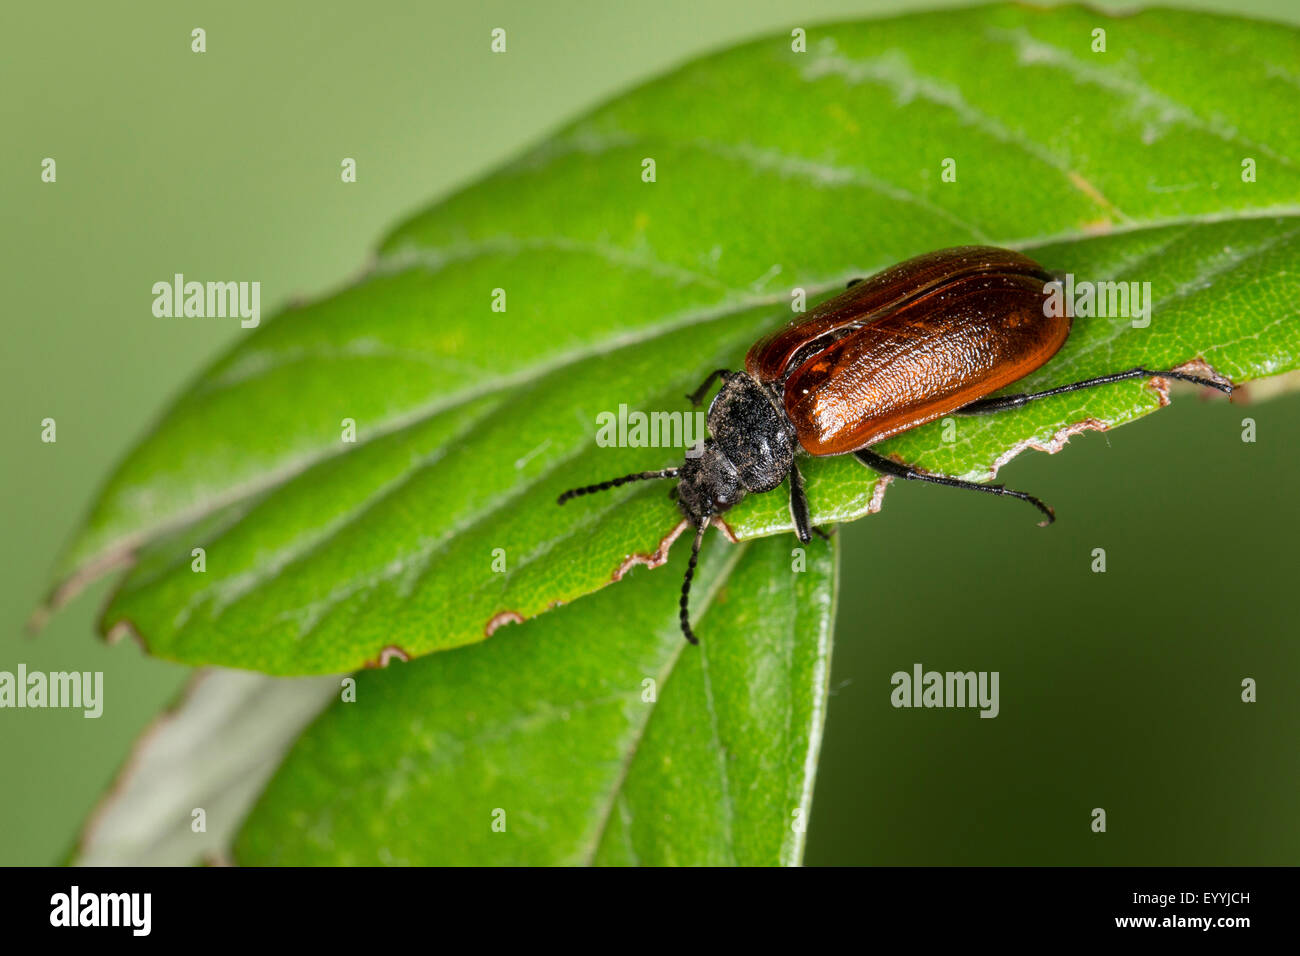 Comb-clawed beetle, Comb clawed beetle (Omophlus spec., Odontomophlus spec.), sitting on a leaf, Germany - Stock Image